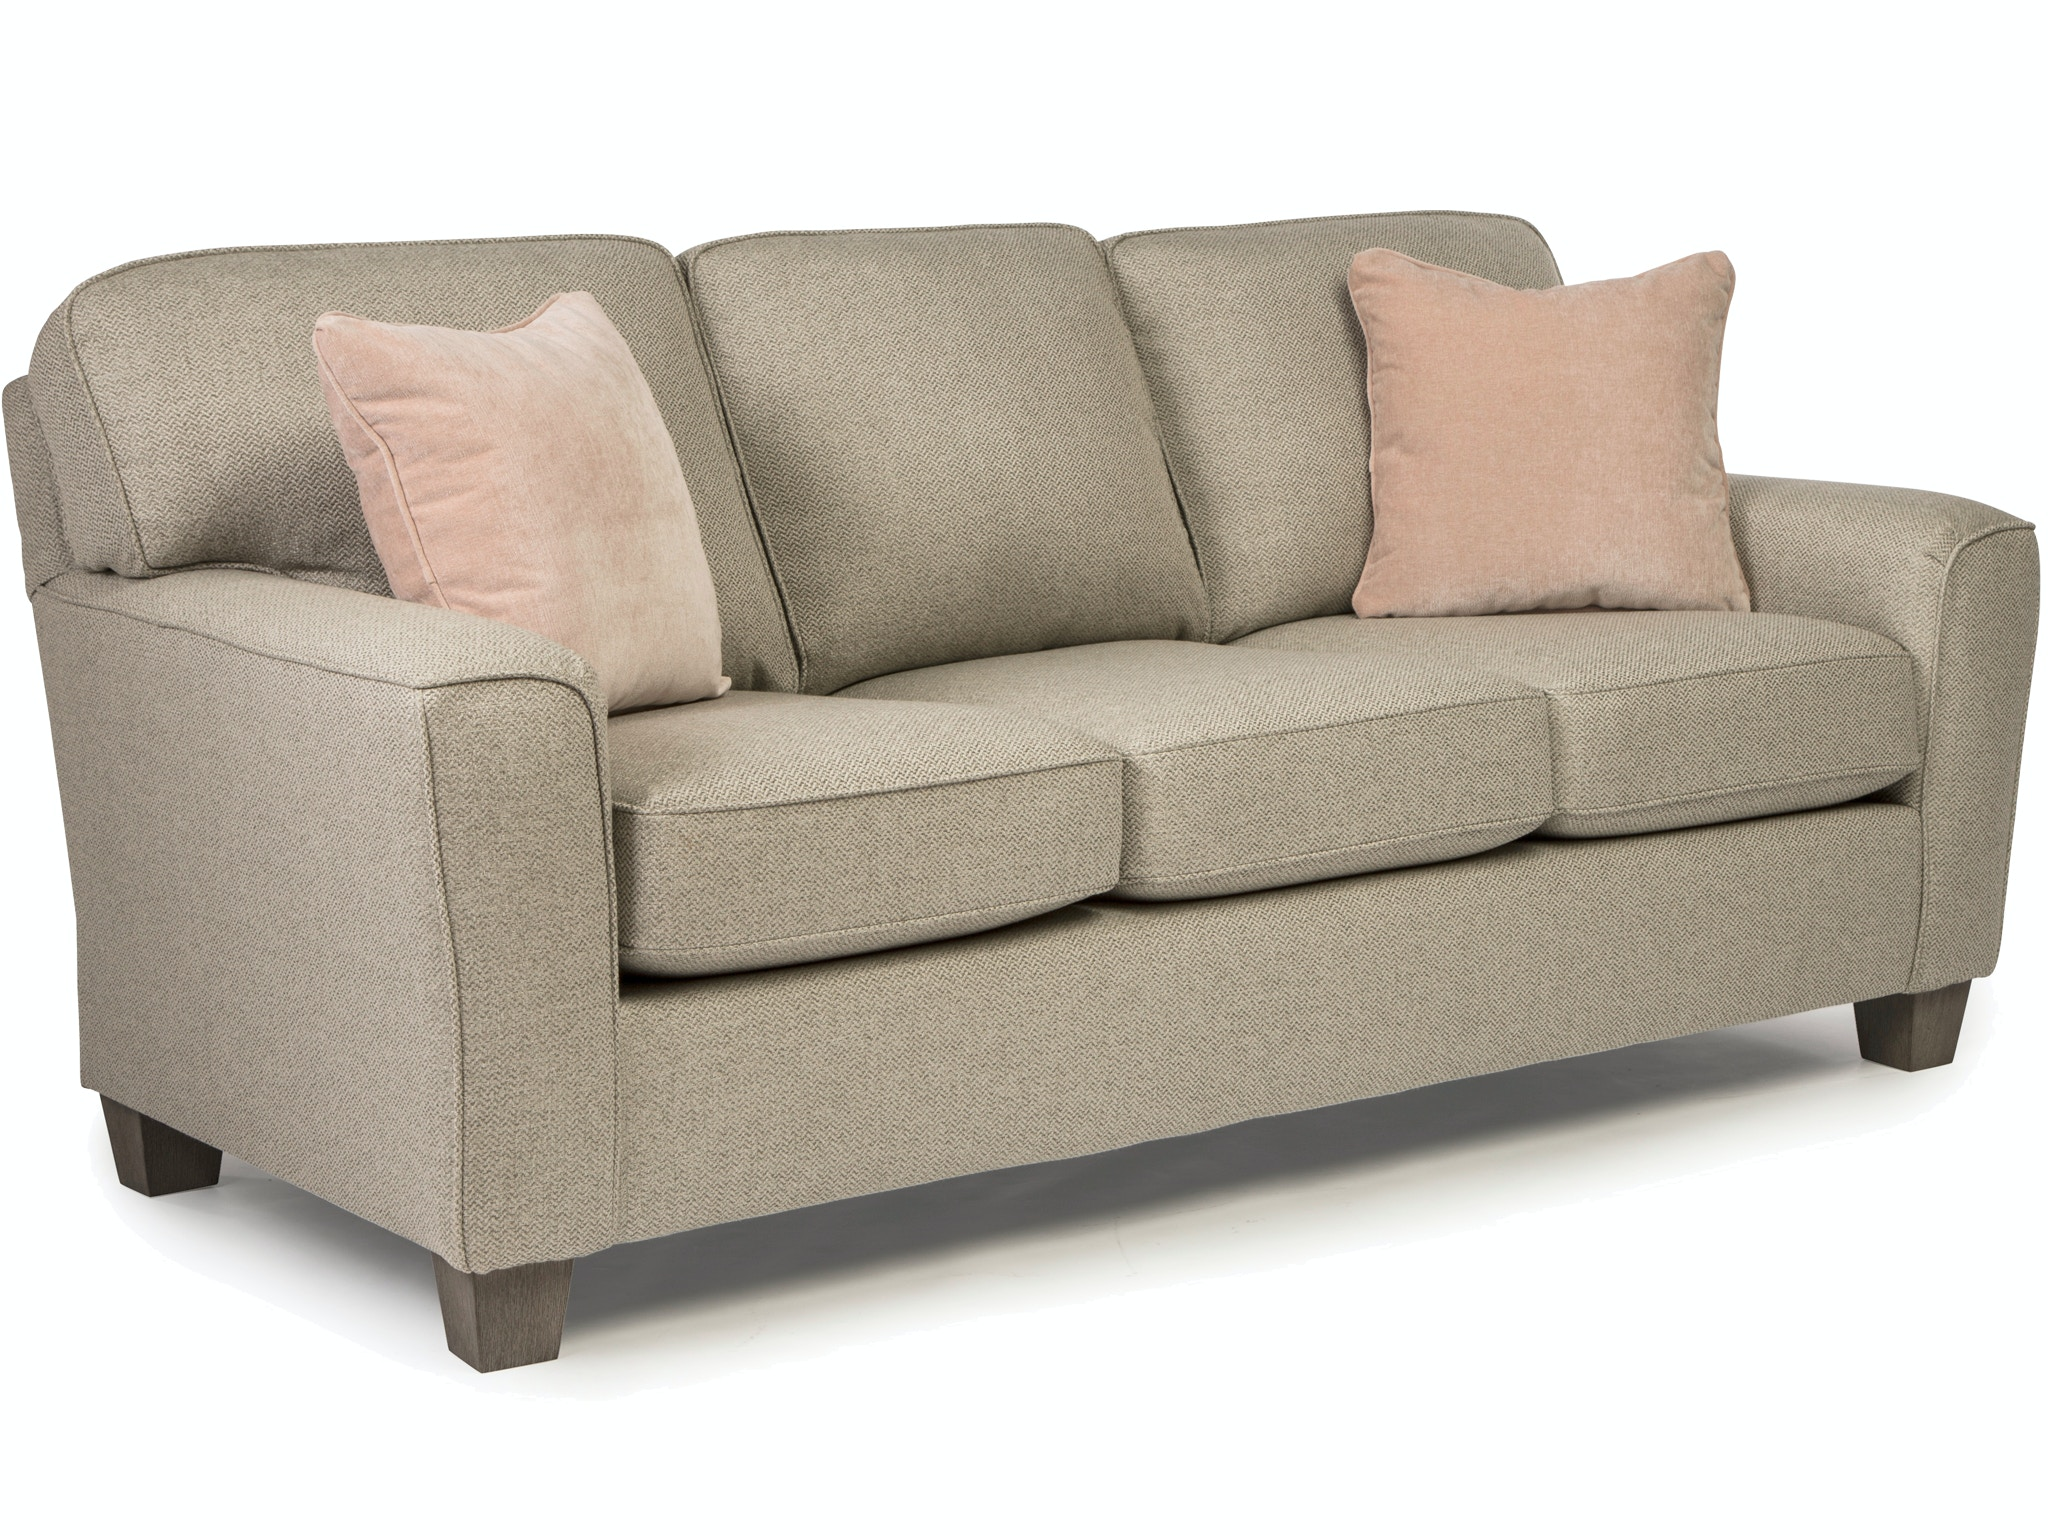 Best Home Furnishings Living Room Stationary Sofa S81E